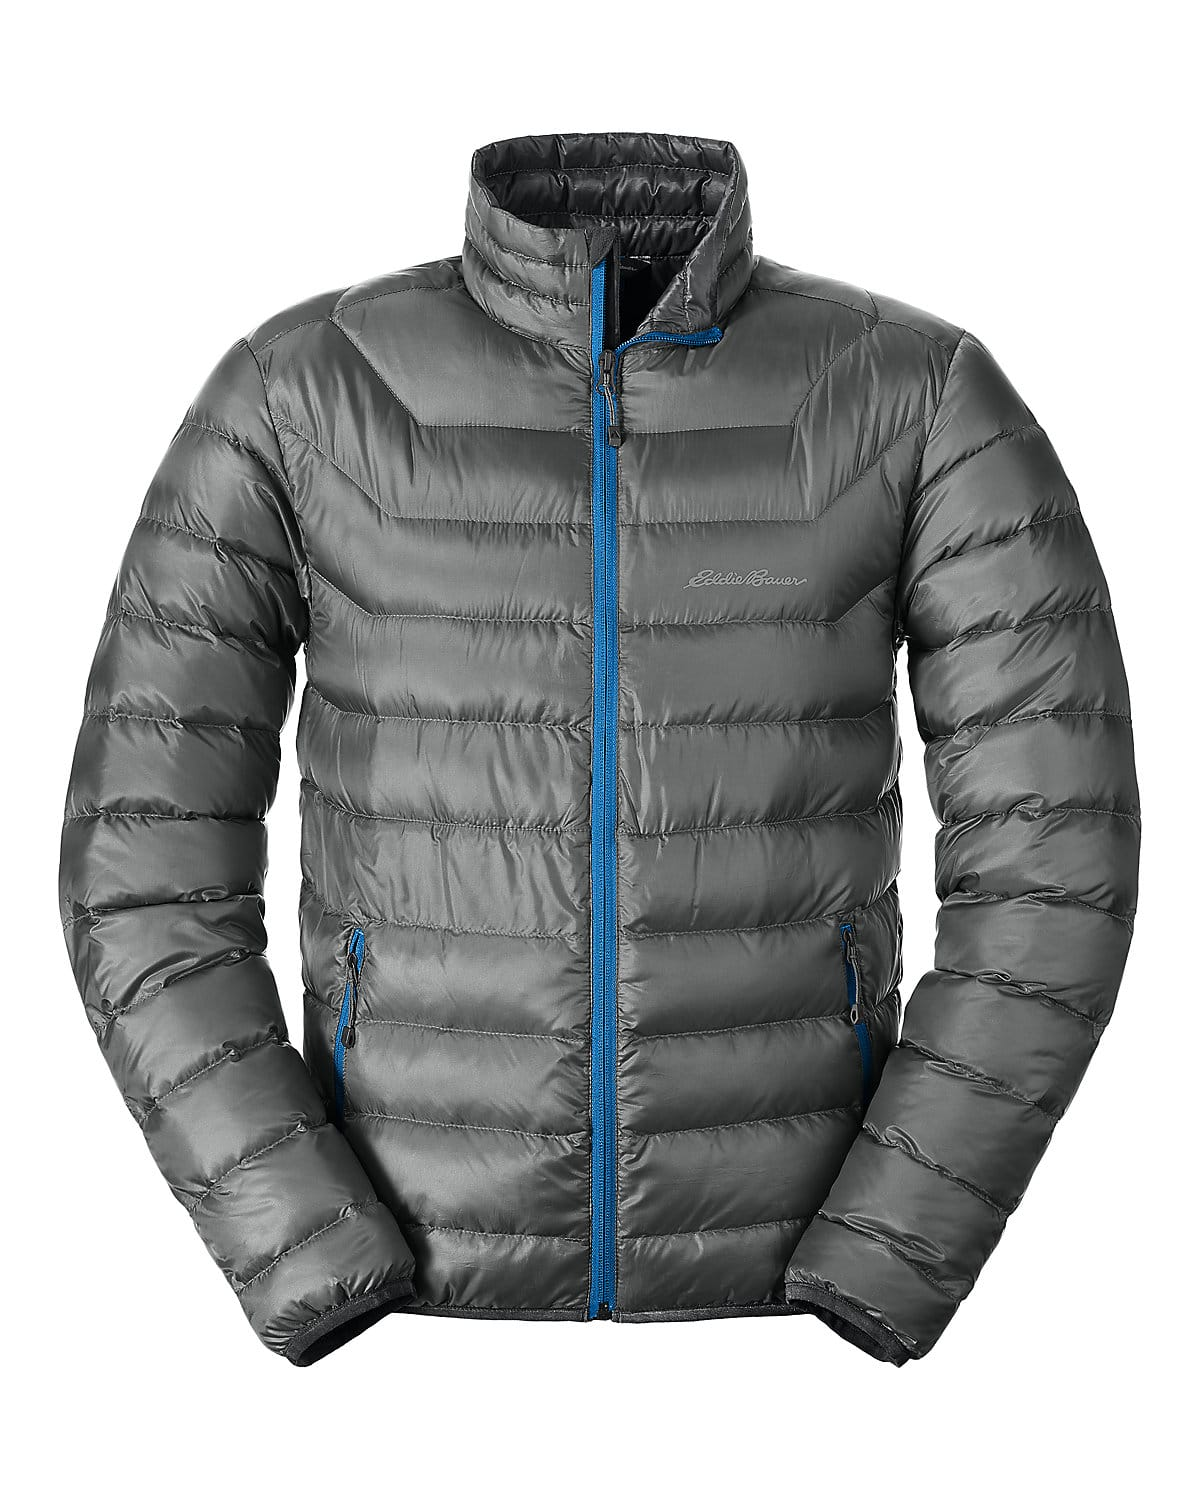 Eddie Bauer Men's Downlight StormDown Jacket (Various Colors)  $82.50